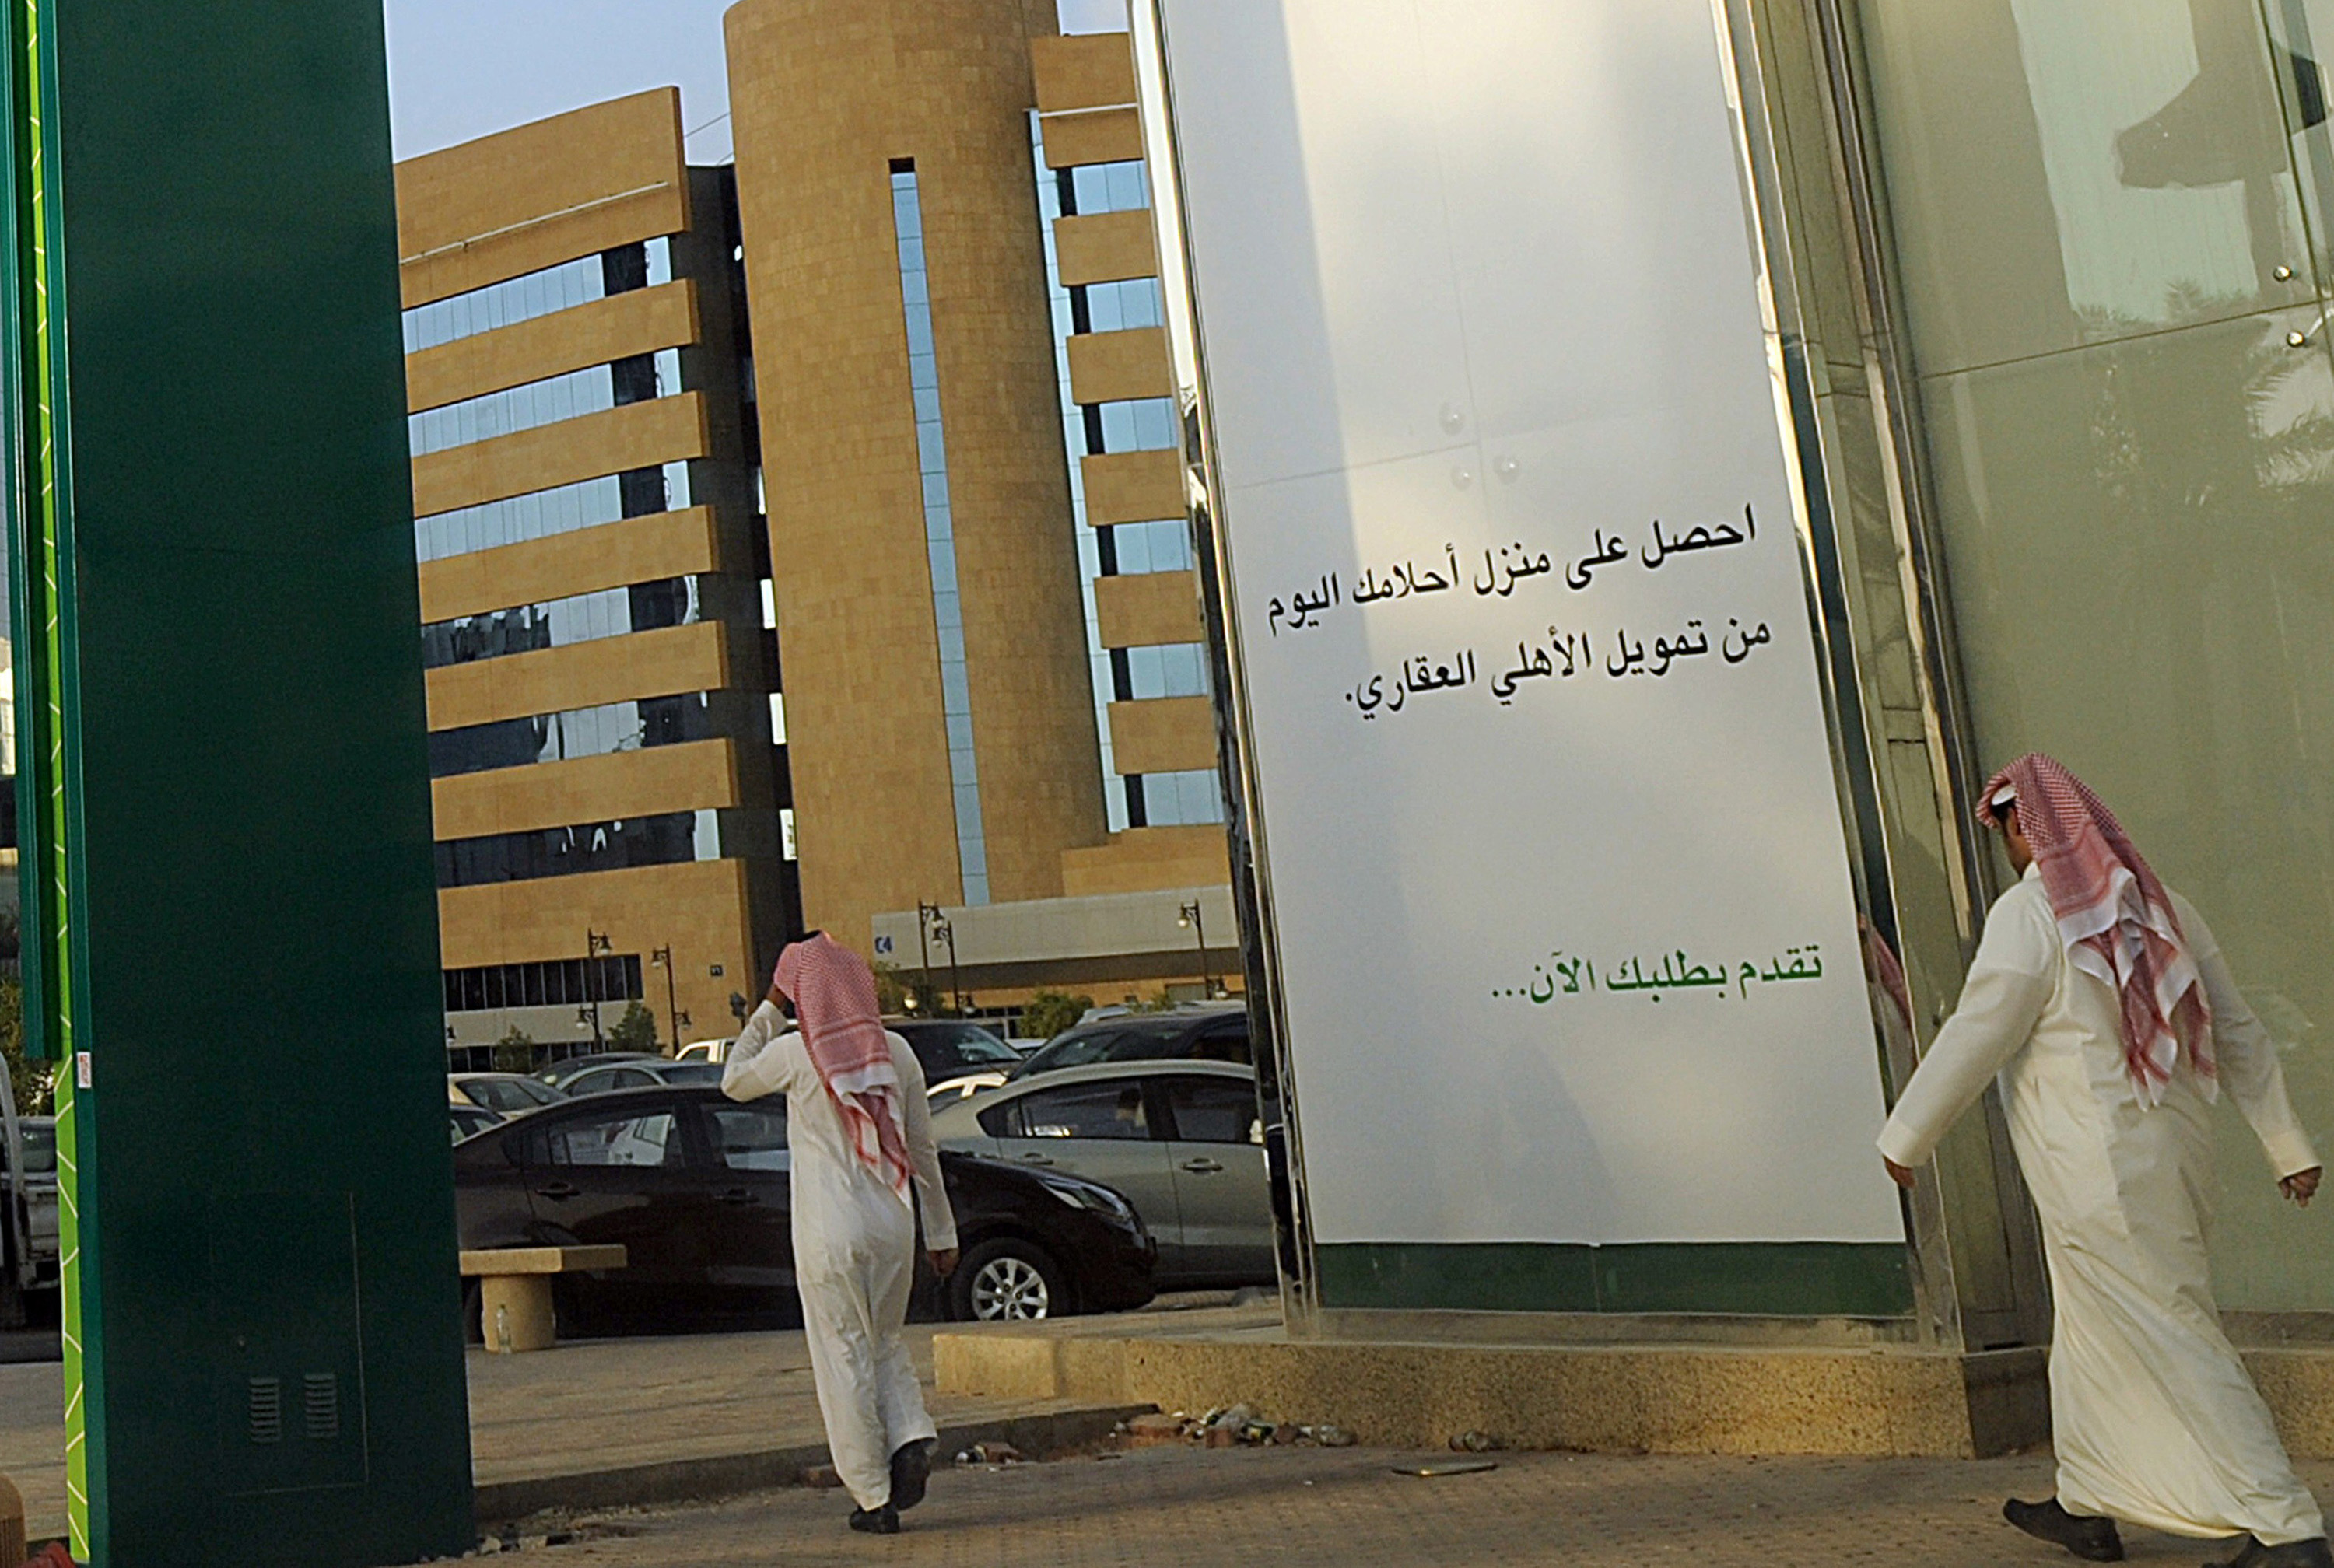 A National Commercial Bank (NCB) in Riyadh.